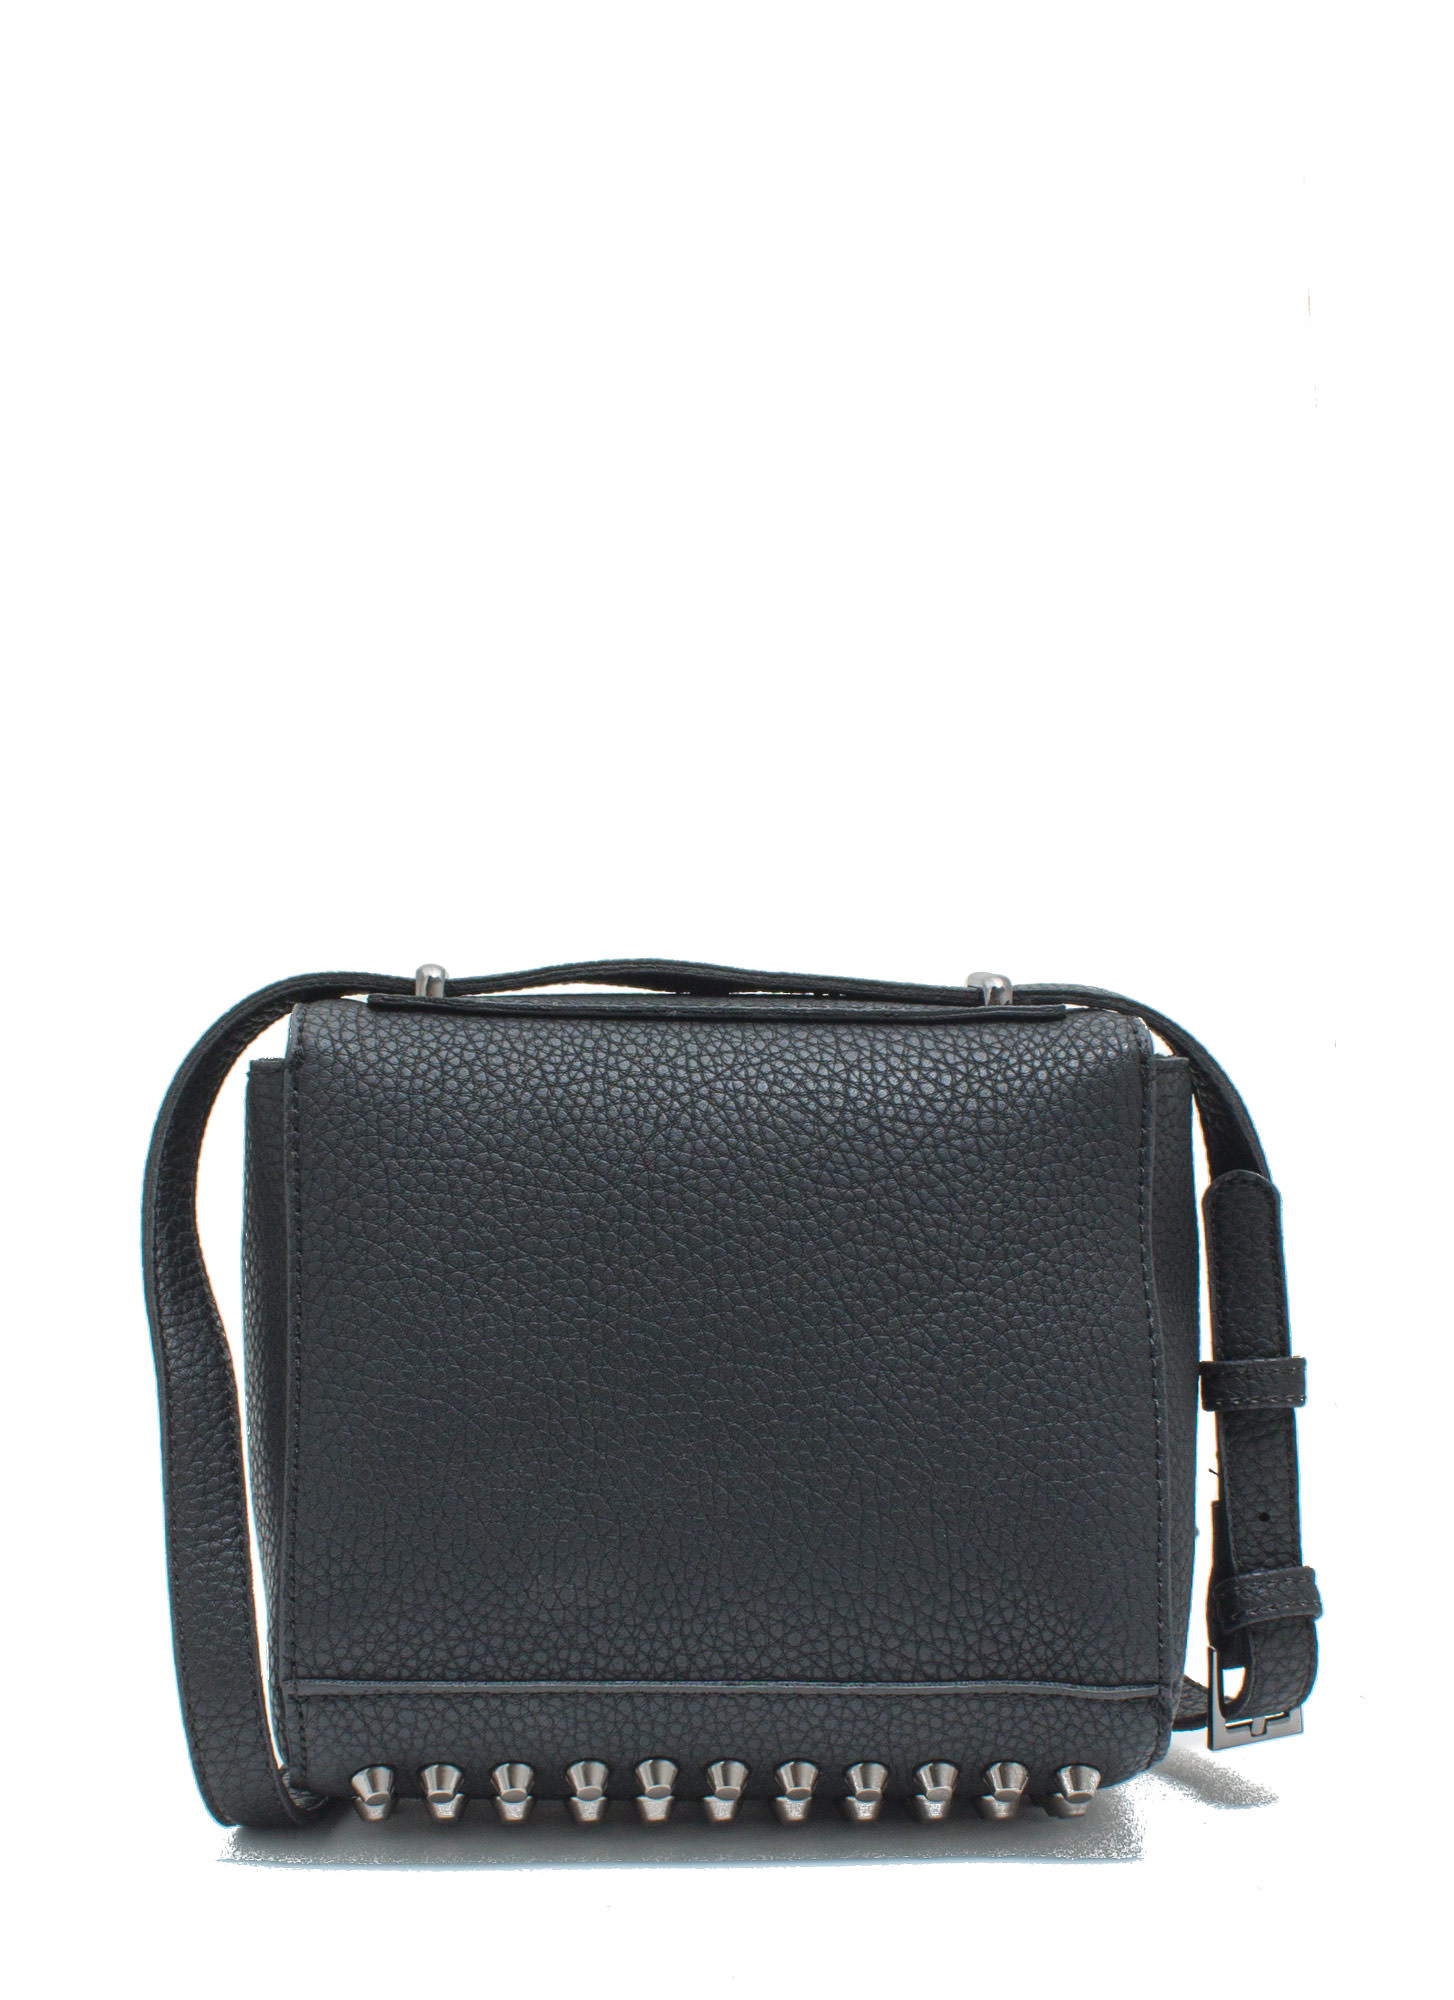 Rocker Studded Cross-Body Bag BLACK